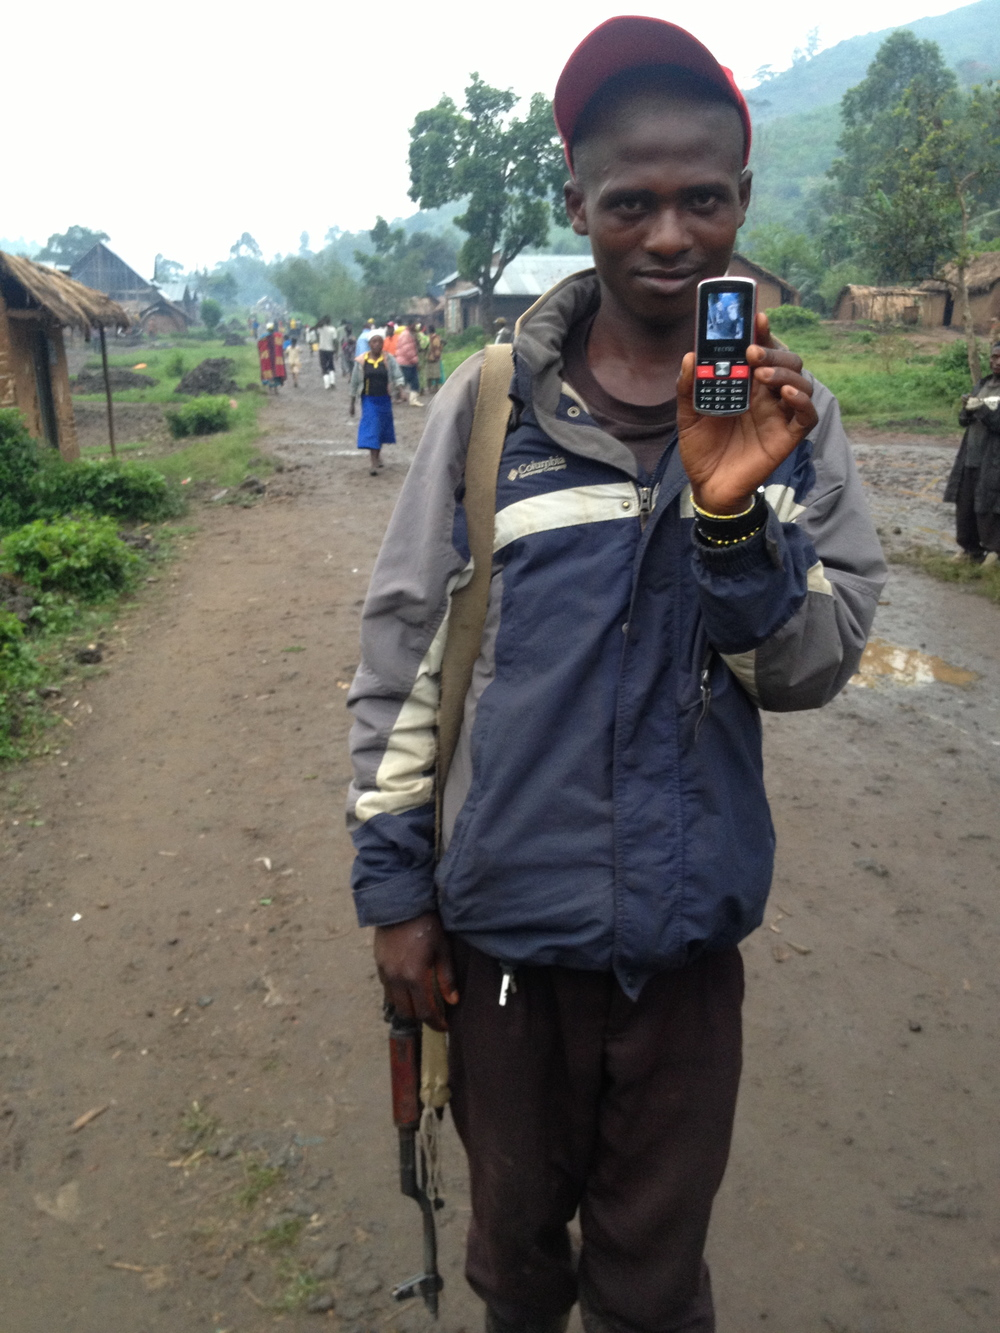 This young boy holds his gun and a photo of a chimpanzee he wants me to buy from him. The bizarre moments in life…